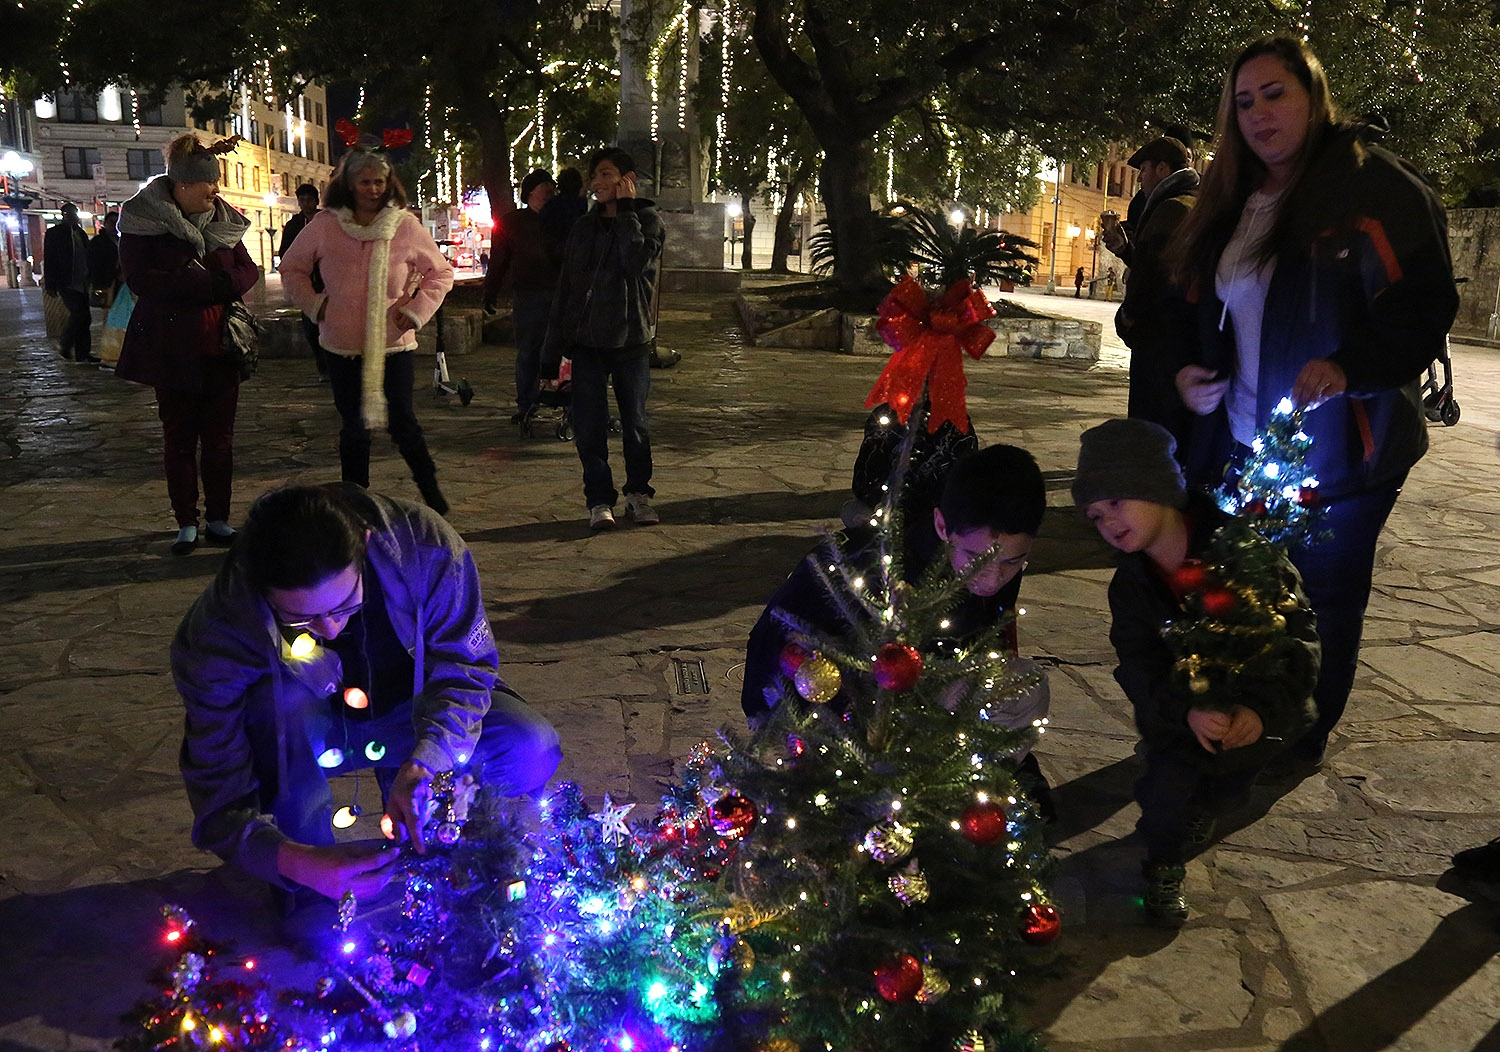 Arturo Gomez, 3, adds his own mini Christmas tree to the collection that formed Sunday night in front of the Alamo. The trees were in protest of downtown's main 50-foot Christmas tree relocation to Travis Park last year. Gomez' Mom, Leanna, looks on as the gathering's organizer, Steve Monreal, left, tends to the bunch. <em><b>Photo by Ben Olivo | Heron</b></em>